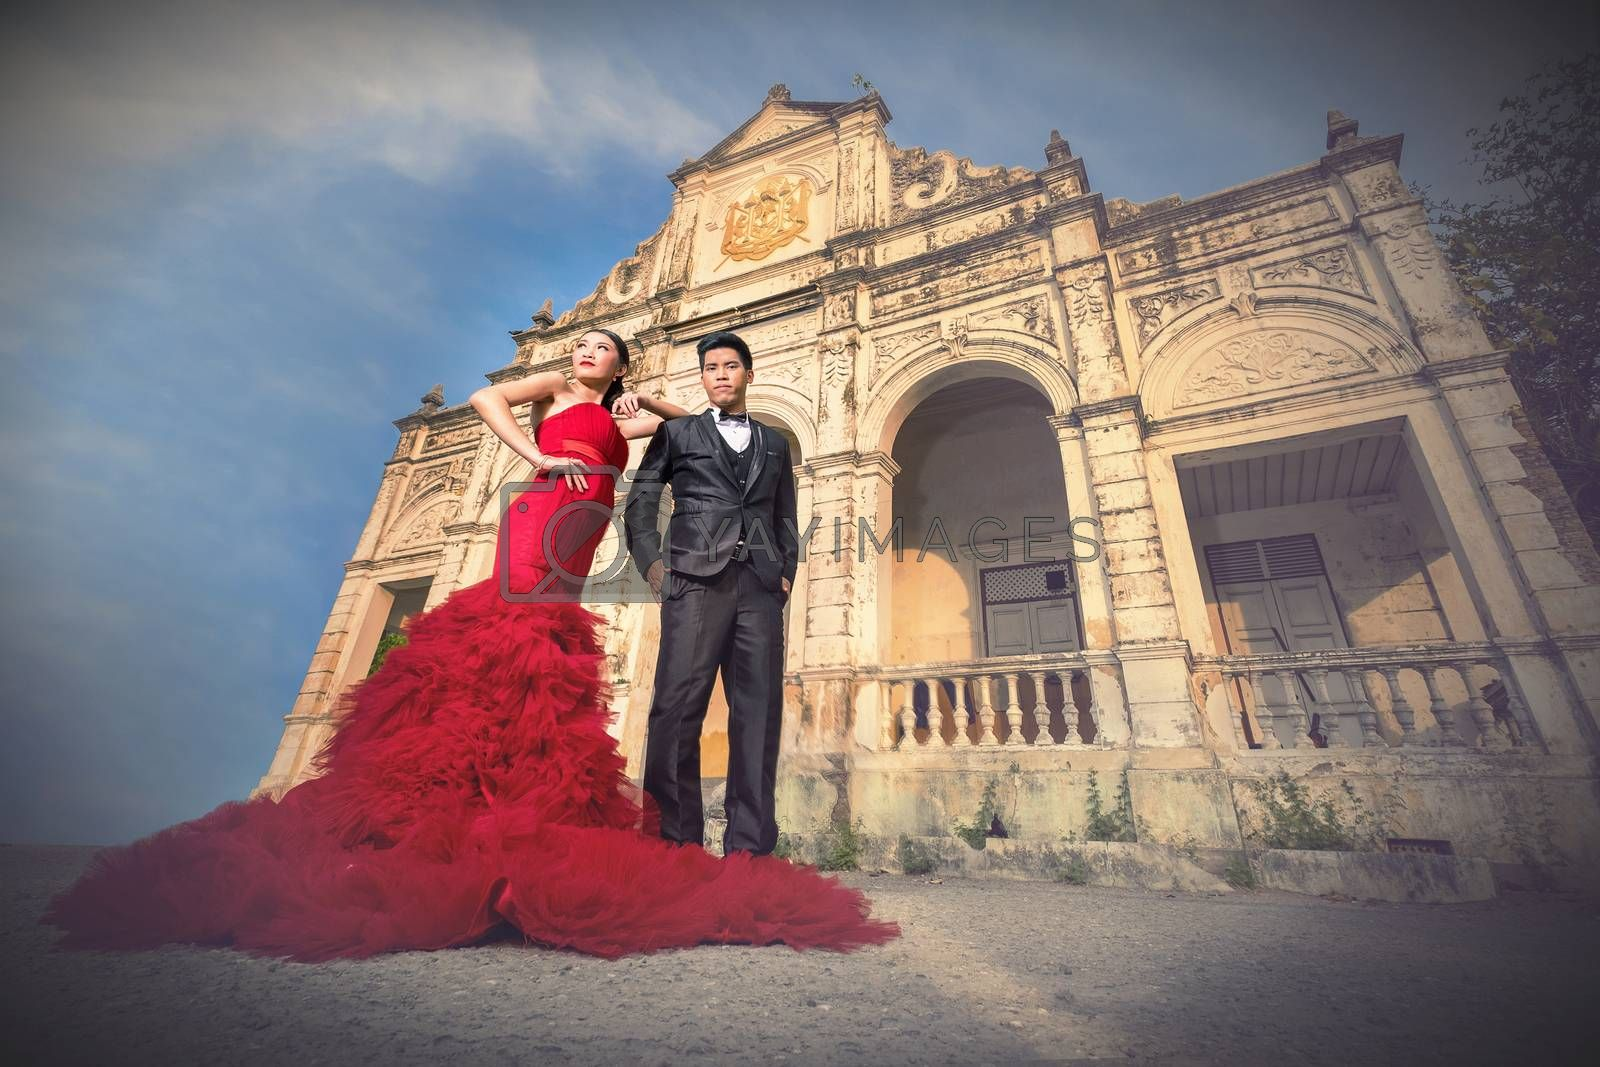 Man and Beautyful woman wearing fashionable red dress by Surasak